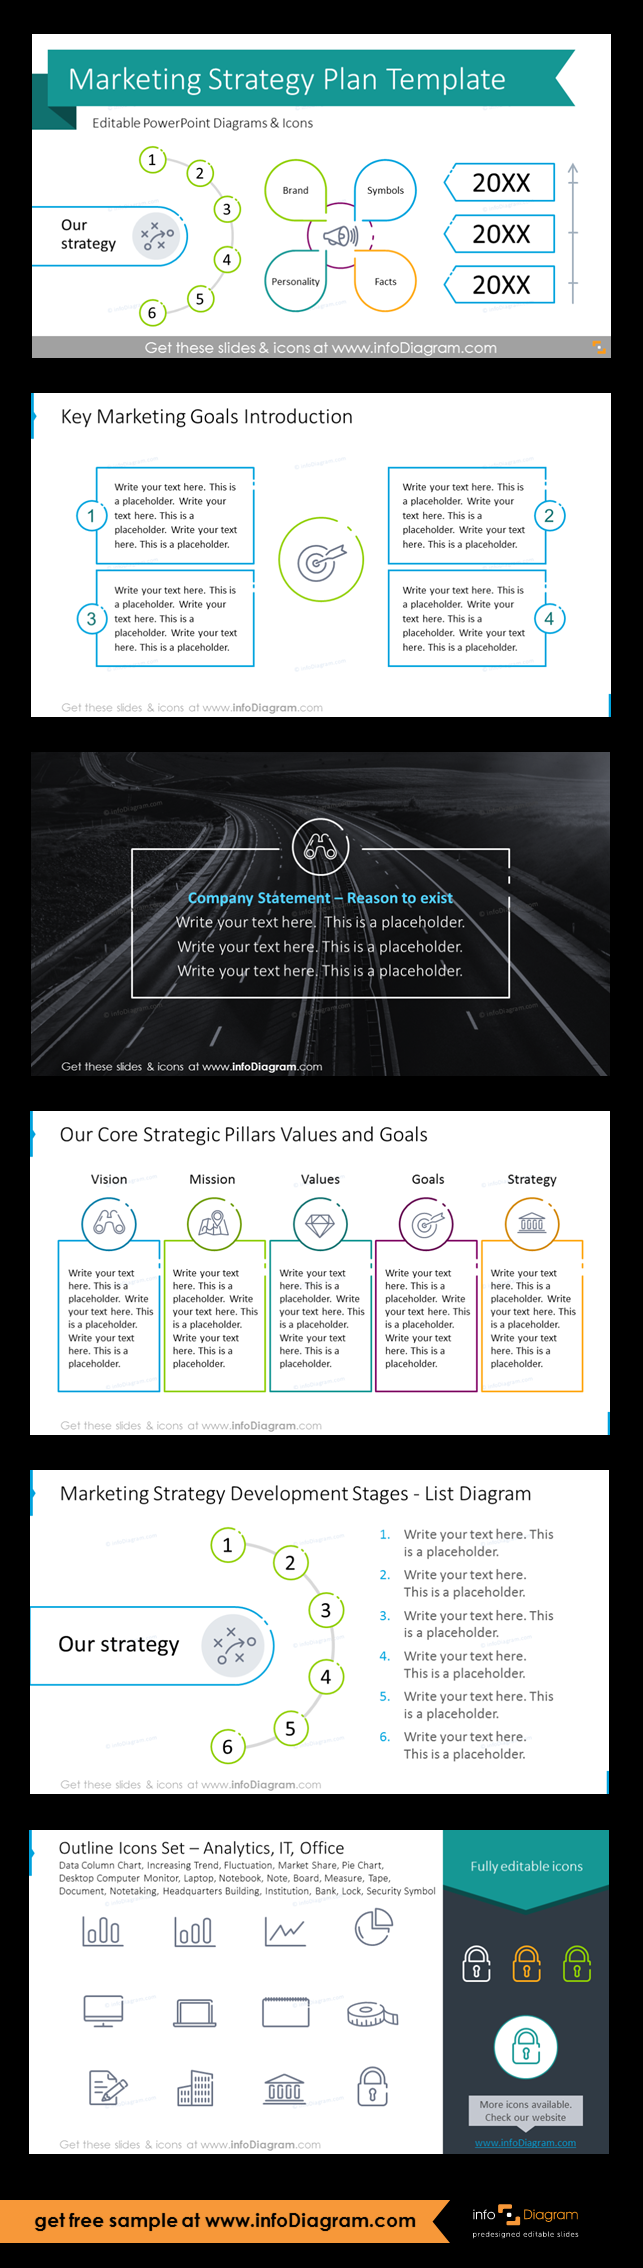 Elegant 56 Slide Marketing Strategy Presentation Deck For New Business Planning As Editable Powerpoint Template With Diagrams And Vector Icons Marketing Strategy Plan Marketing Strategy Marketing Analysis